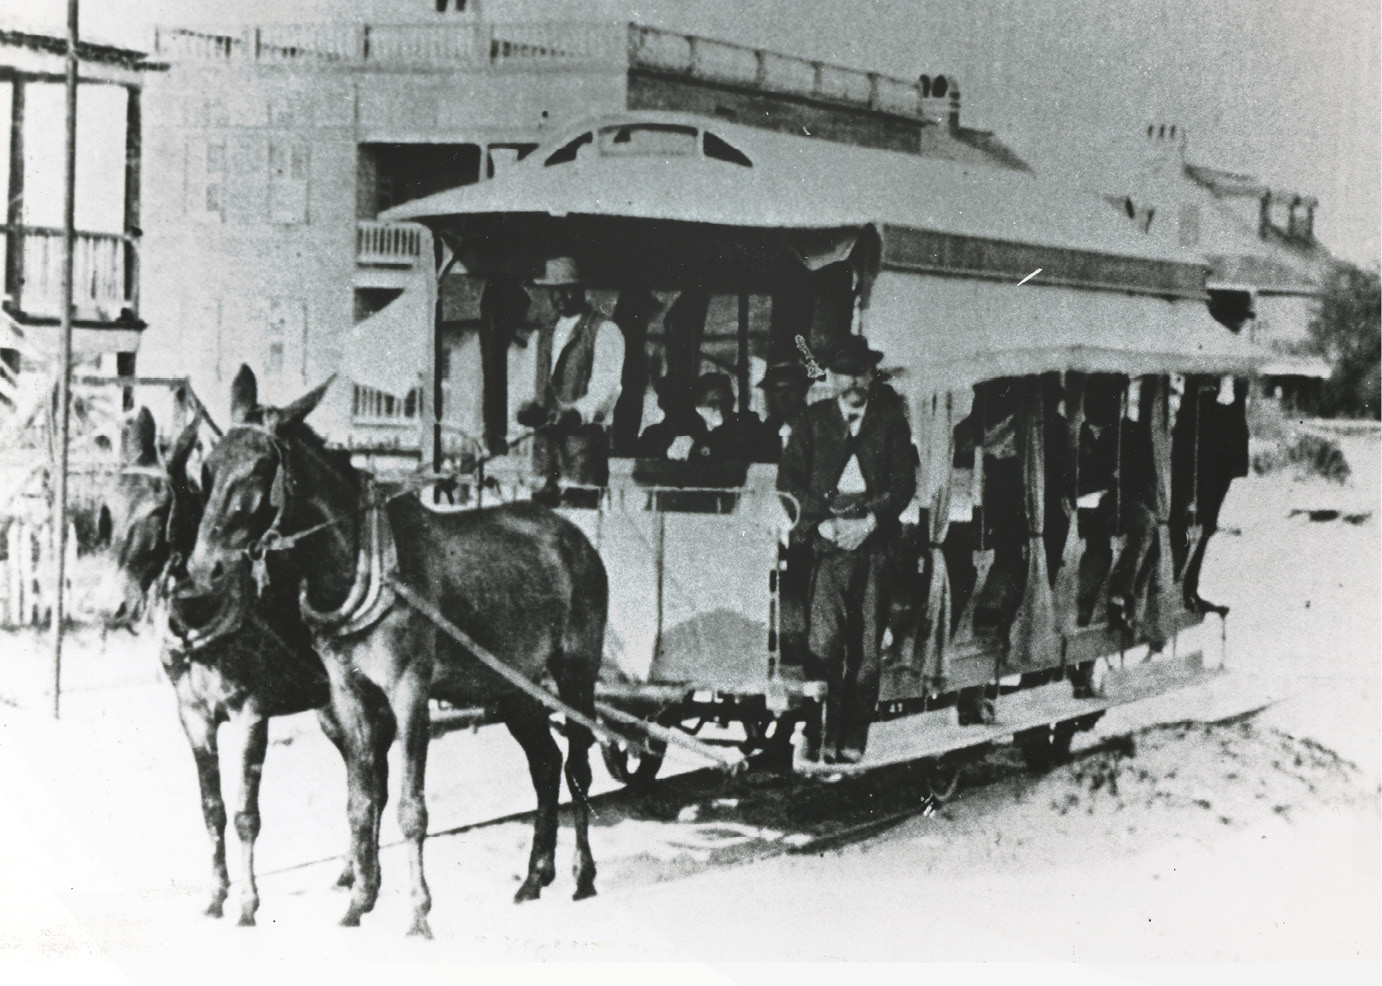 The last trip of a mule-drawn trolley in 1898